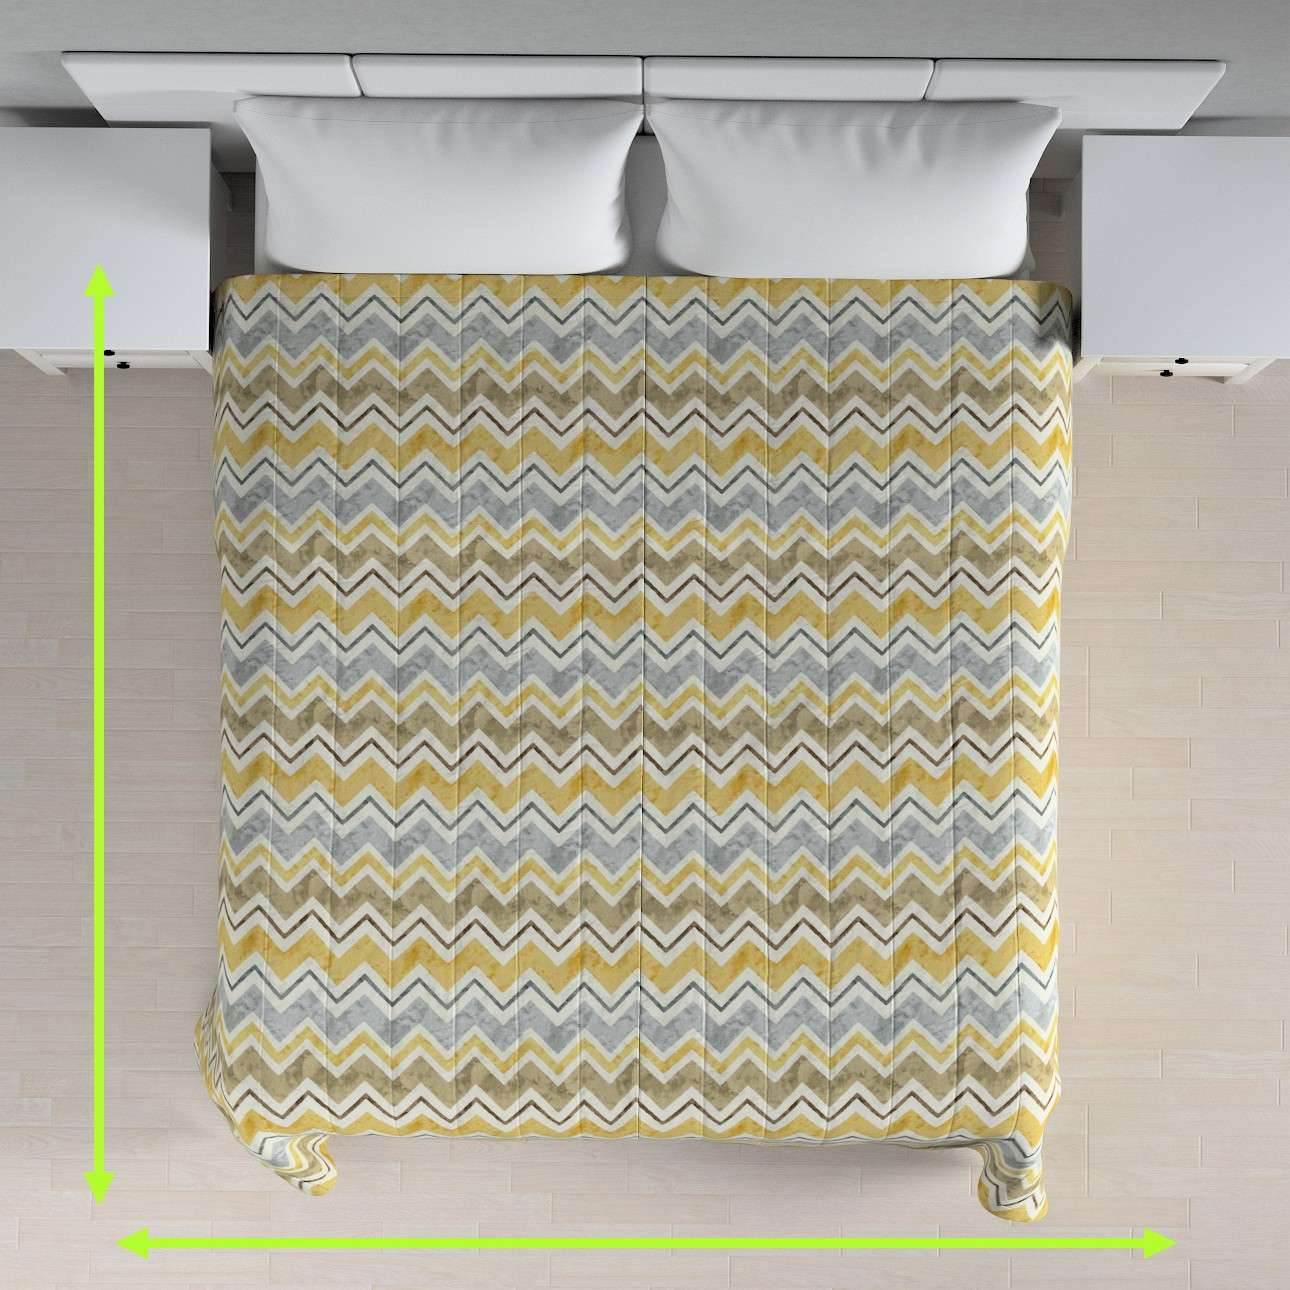 Stripe quilted throw in collection Acapulco, fabric: 141-39